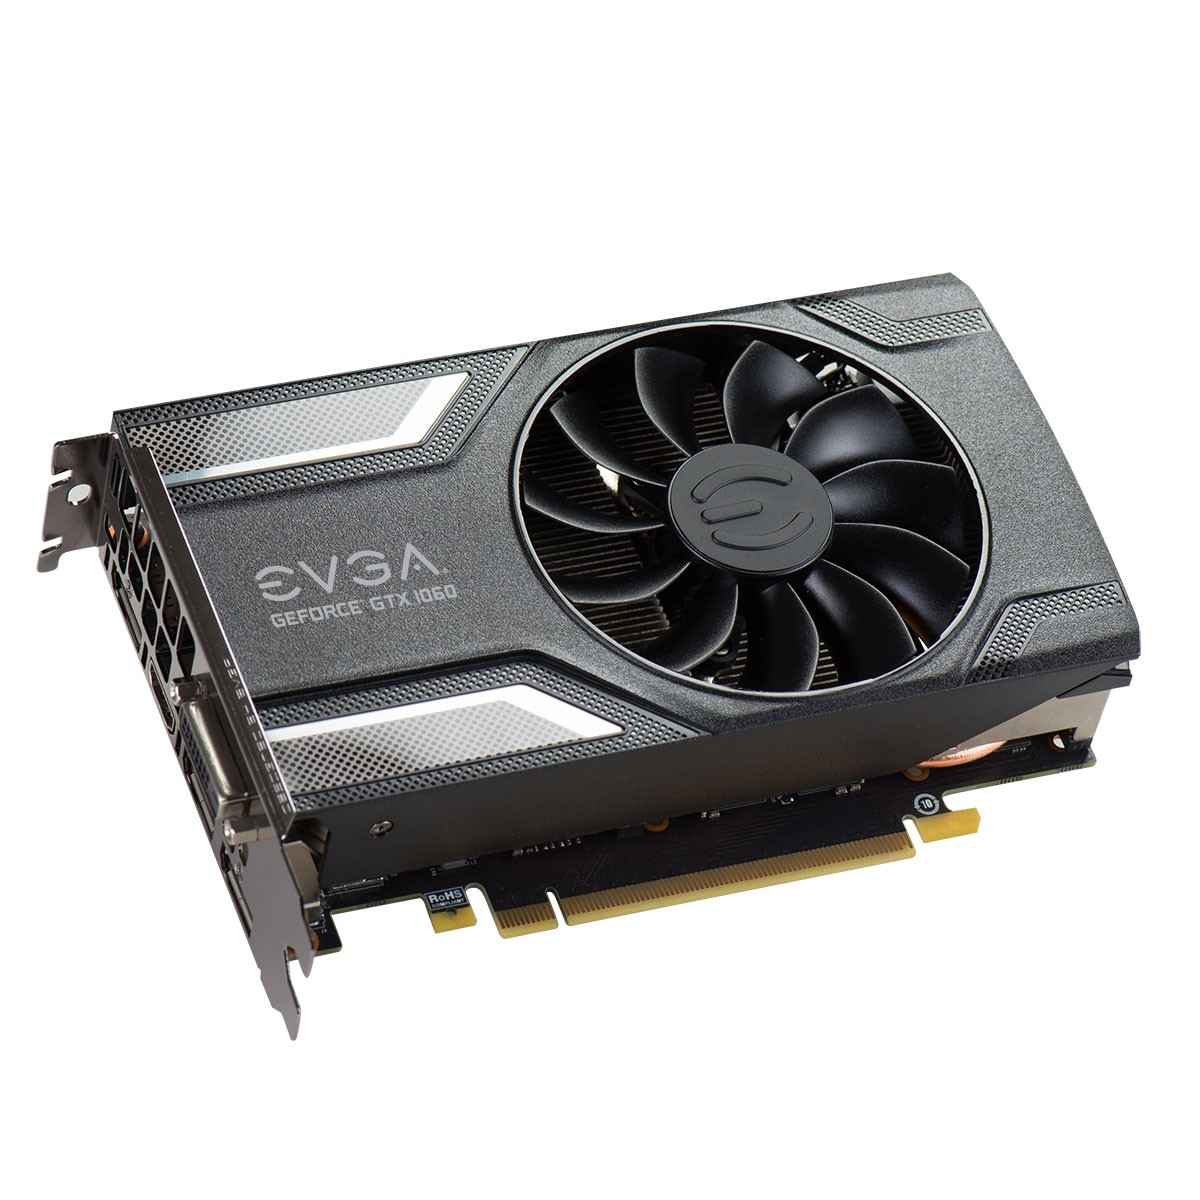 Placa De Vídeo Gtx1060 3Gb Sc Acx2.0 Ddr5 Evga